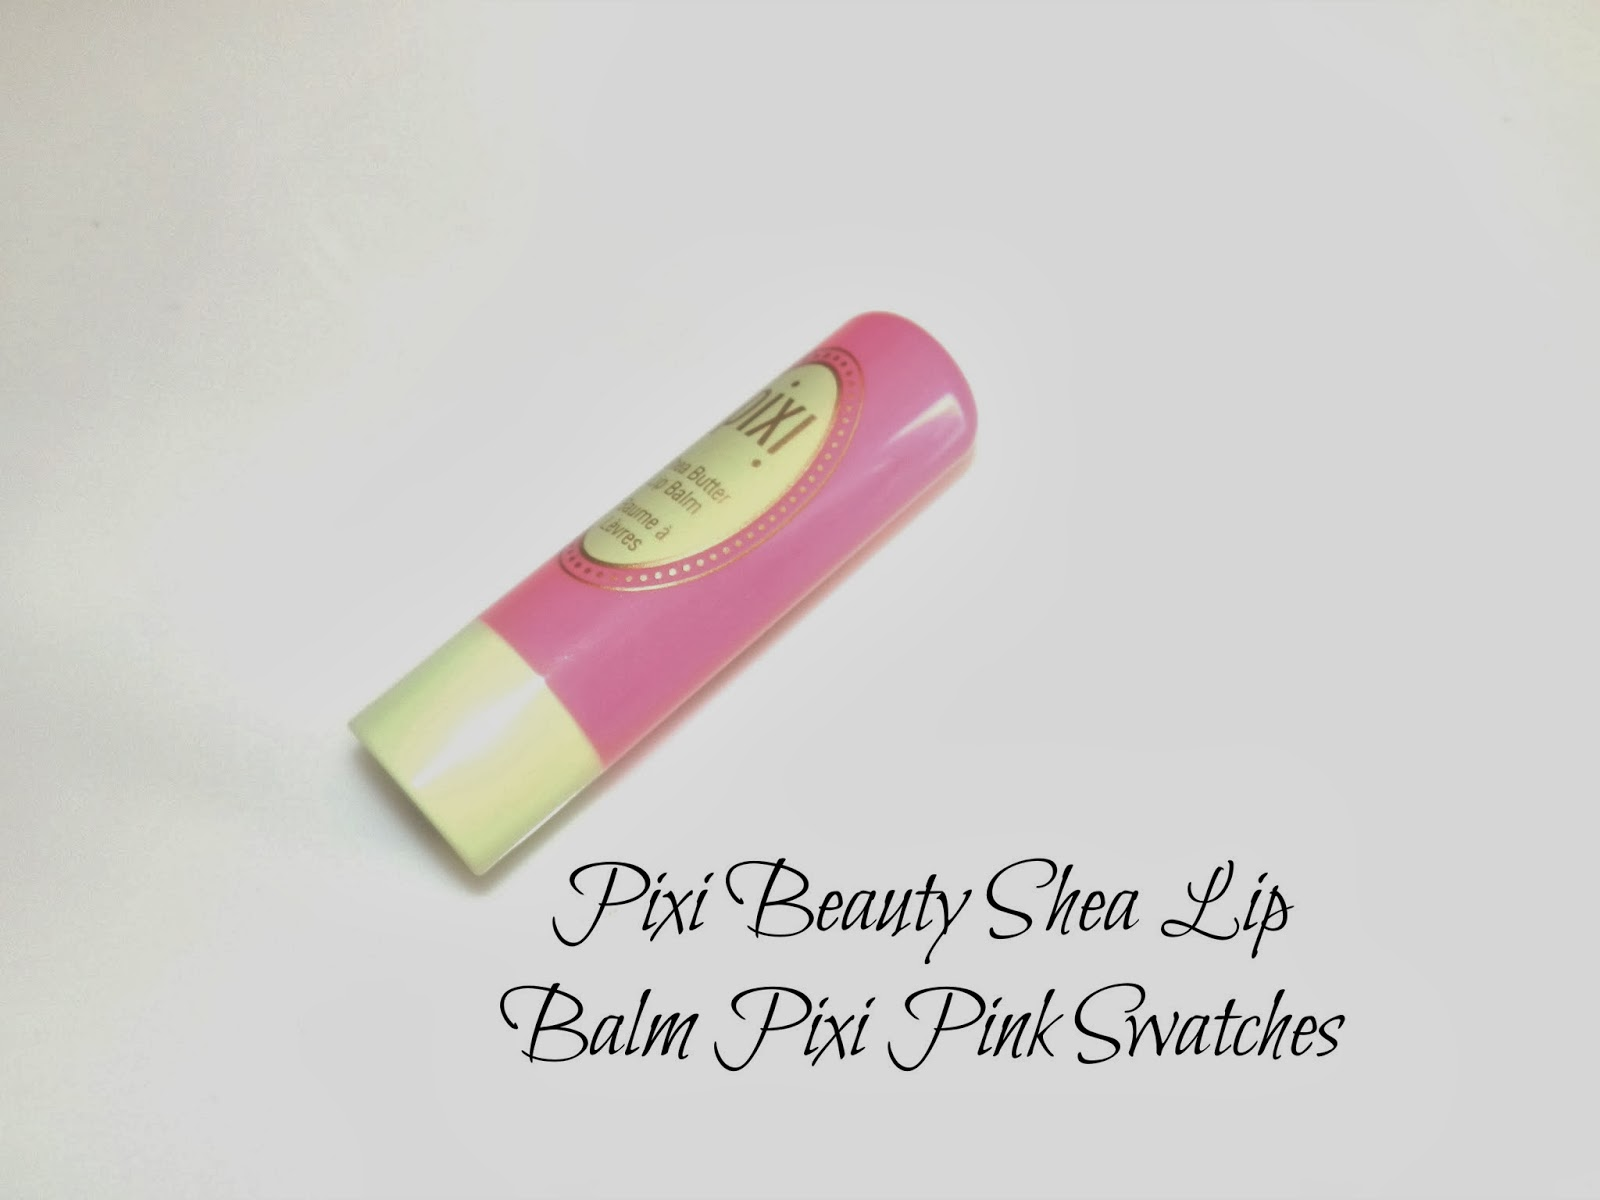 Pixi Beauty Shea Butter Lip Balm Pixi Pink Swatches